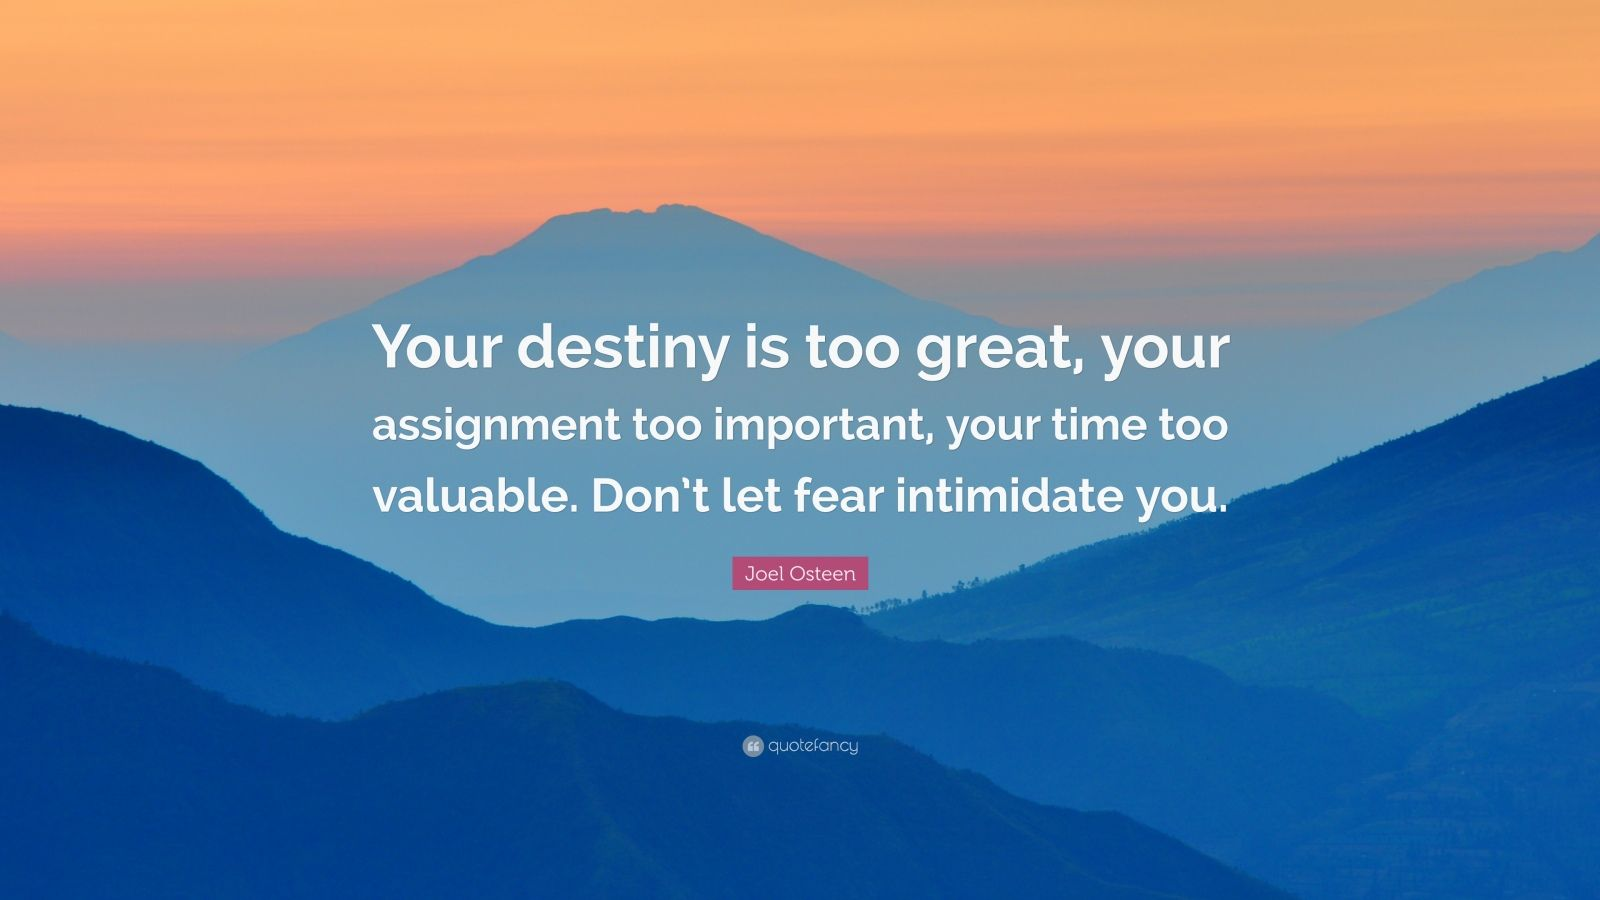 """Joel Osteen Quote: """"Your destiny is too great, your assignment too important, your time too valuable. Don't let fear intimidate you."""""""